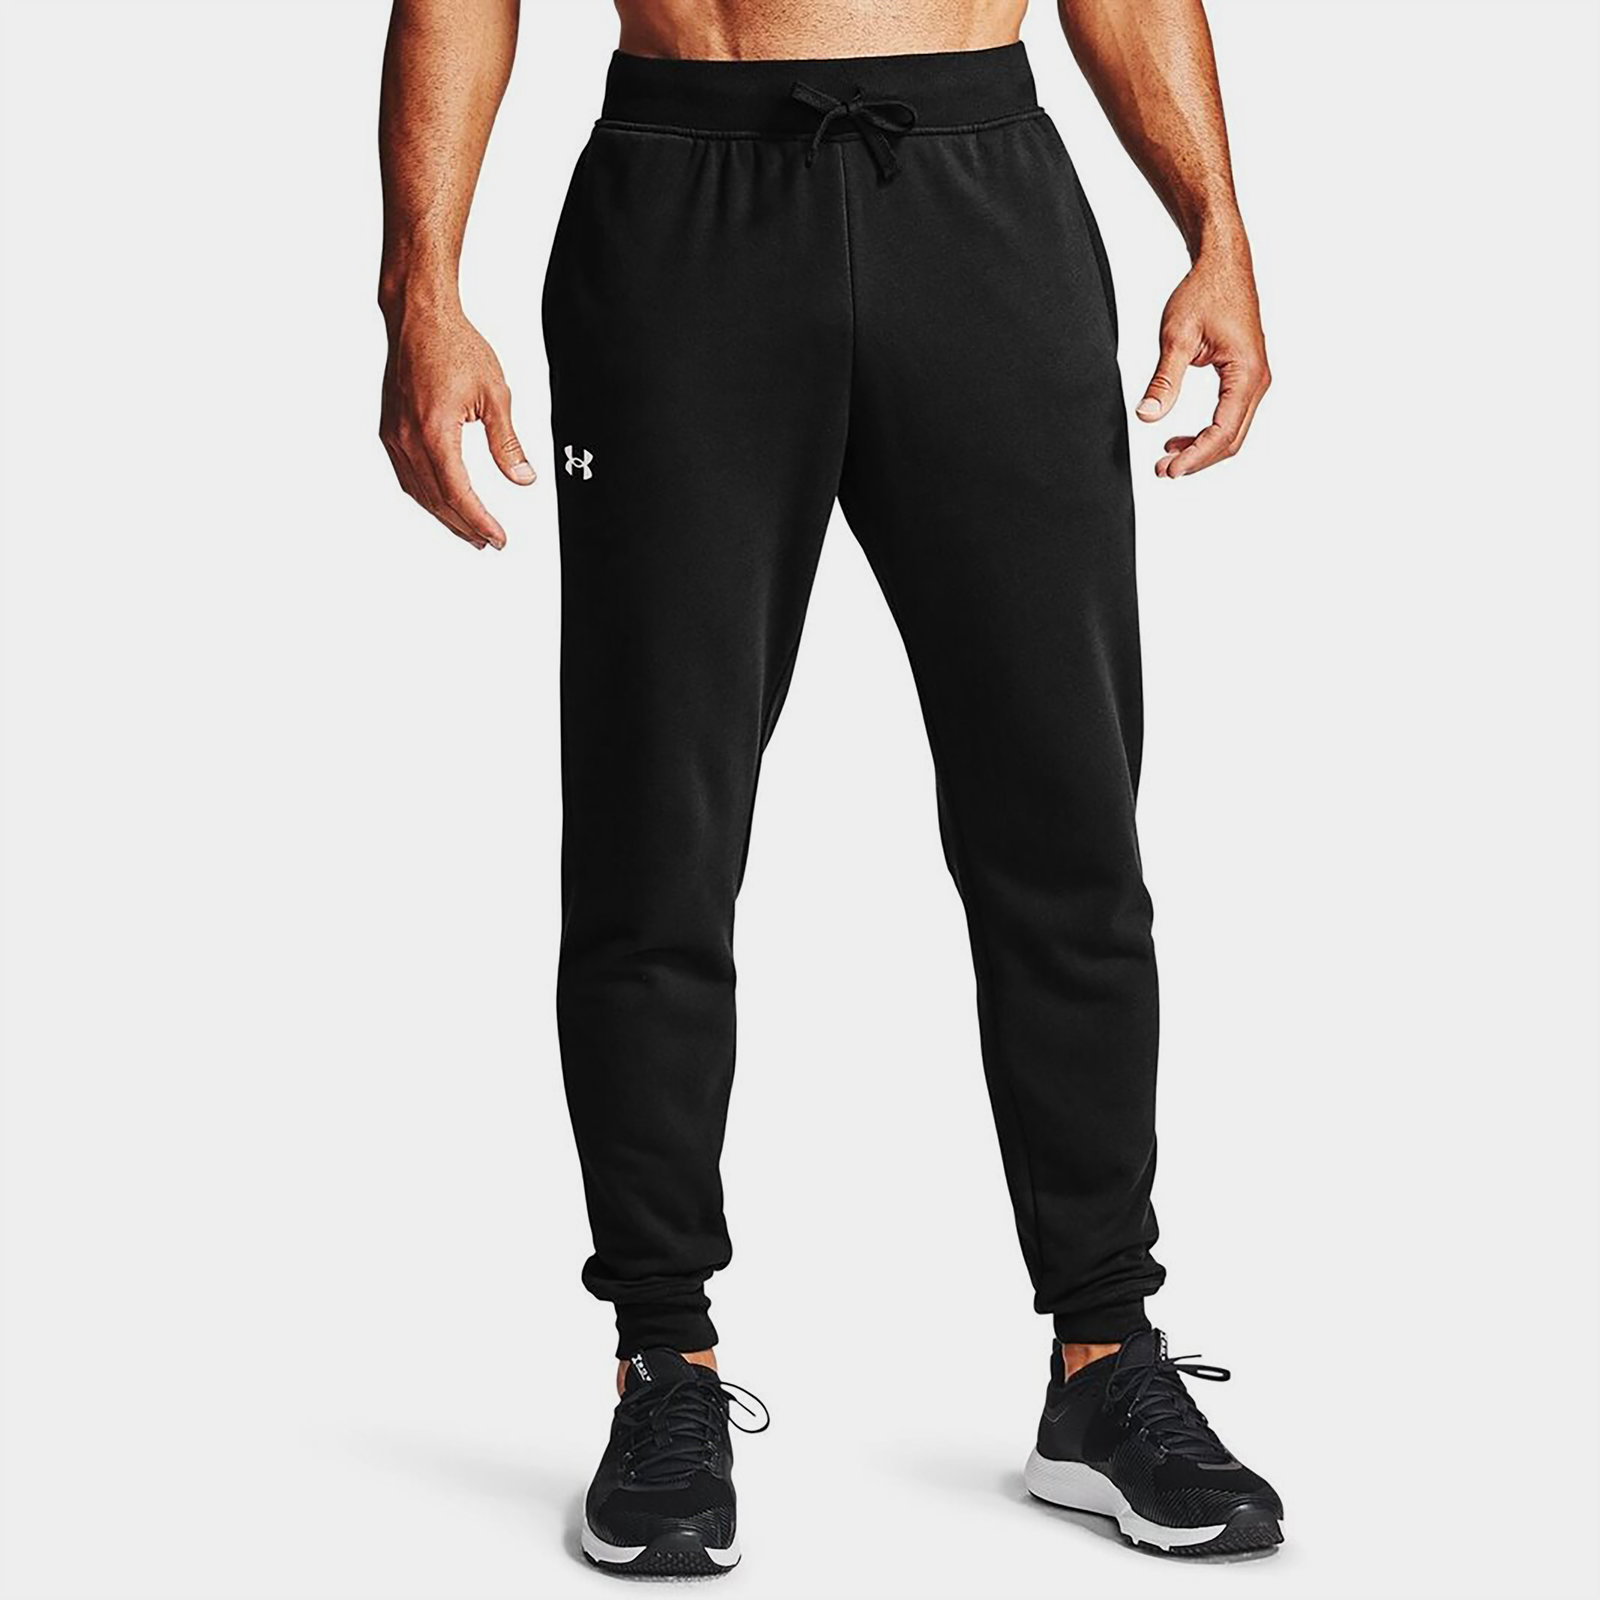 Rival Tracksuit Bottoms Mens